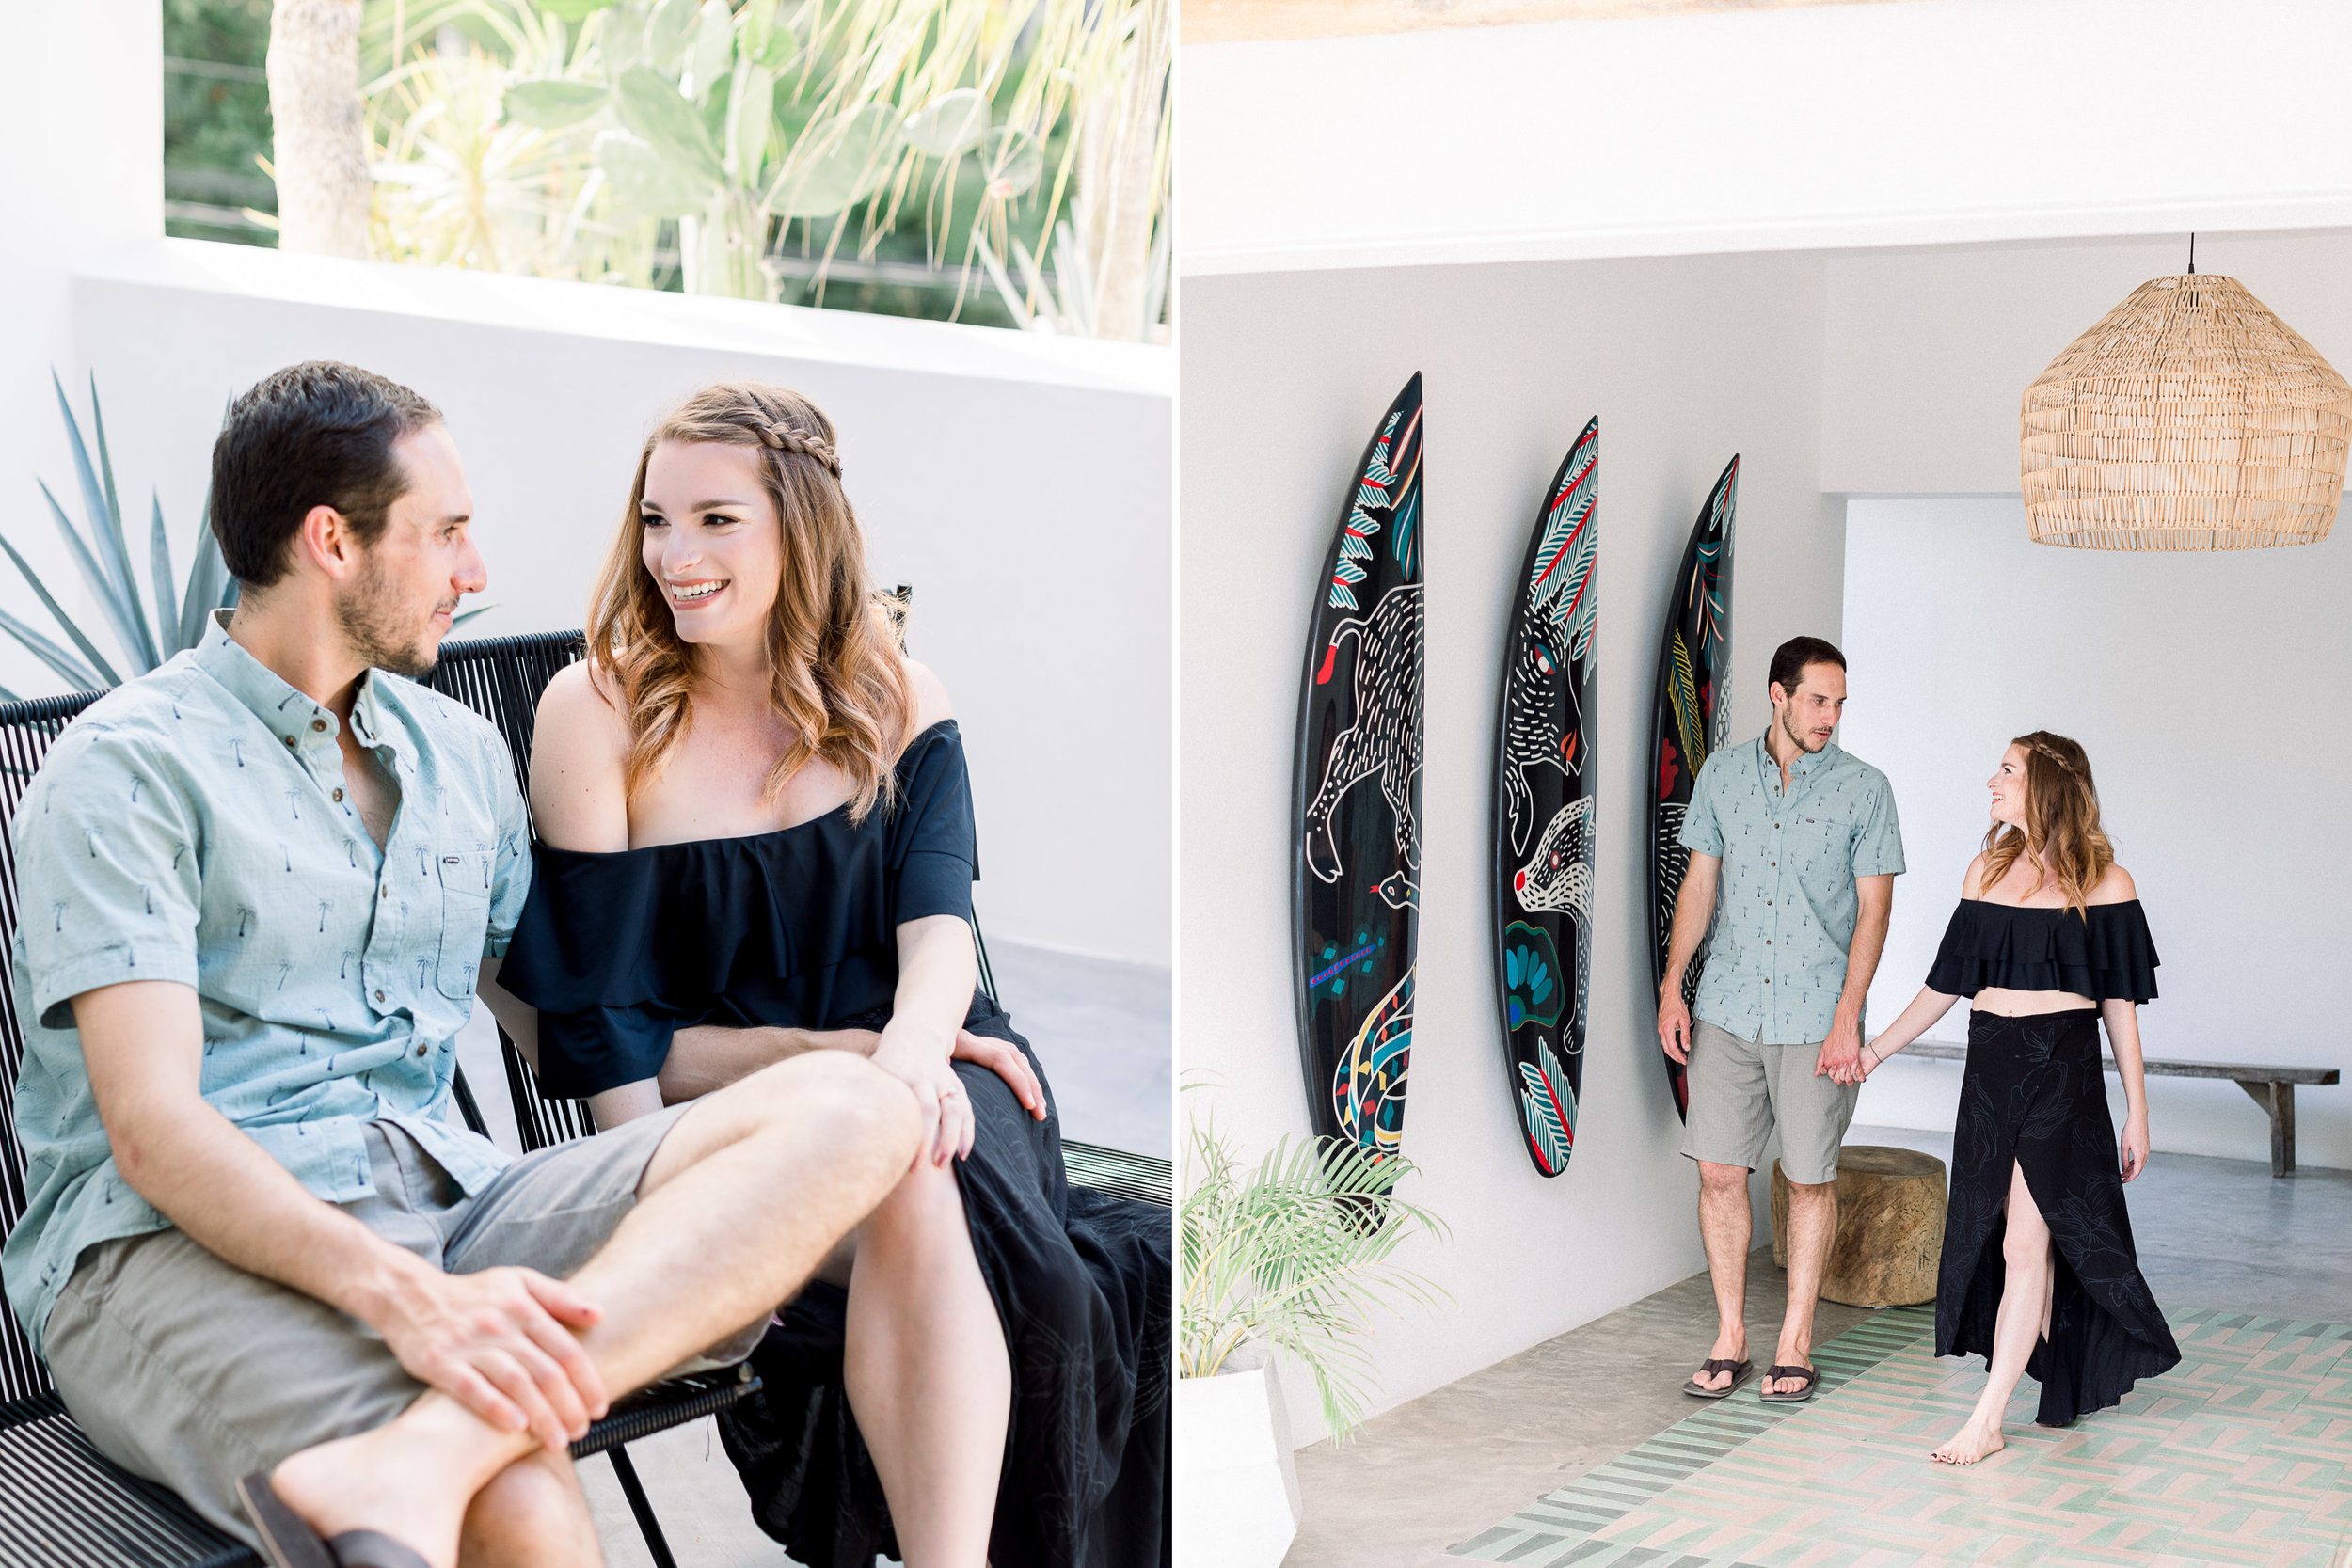 Don Bonito hotel - Sayulita photographer